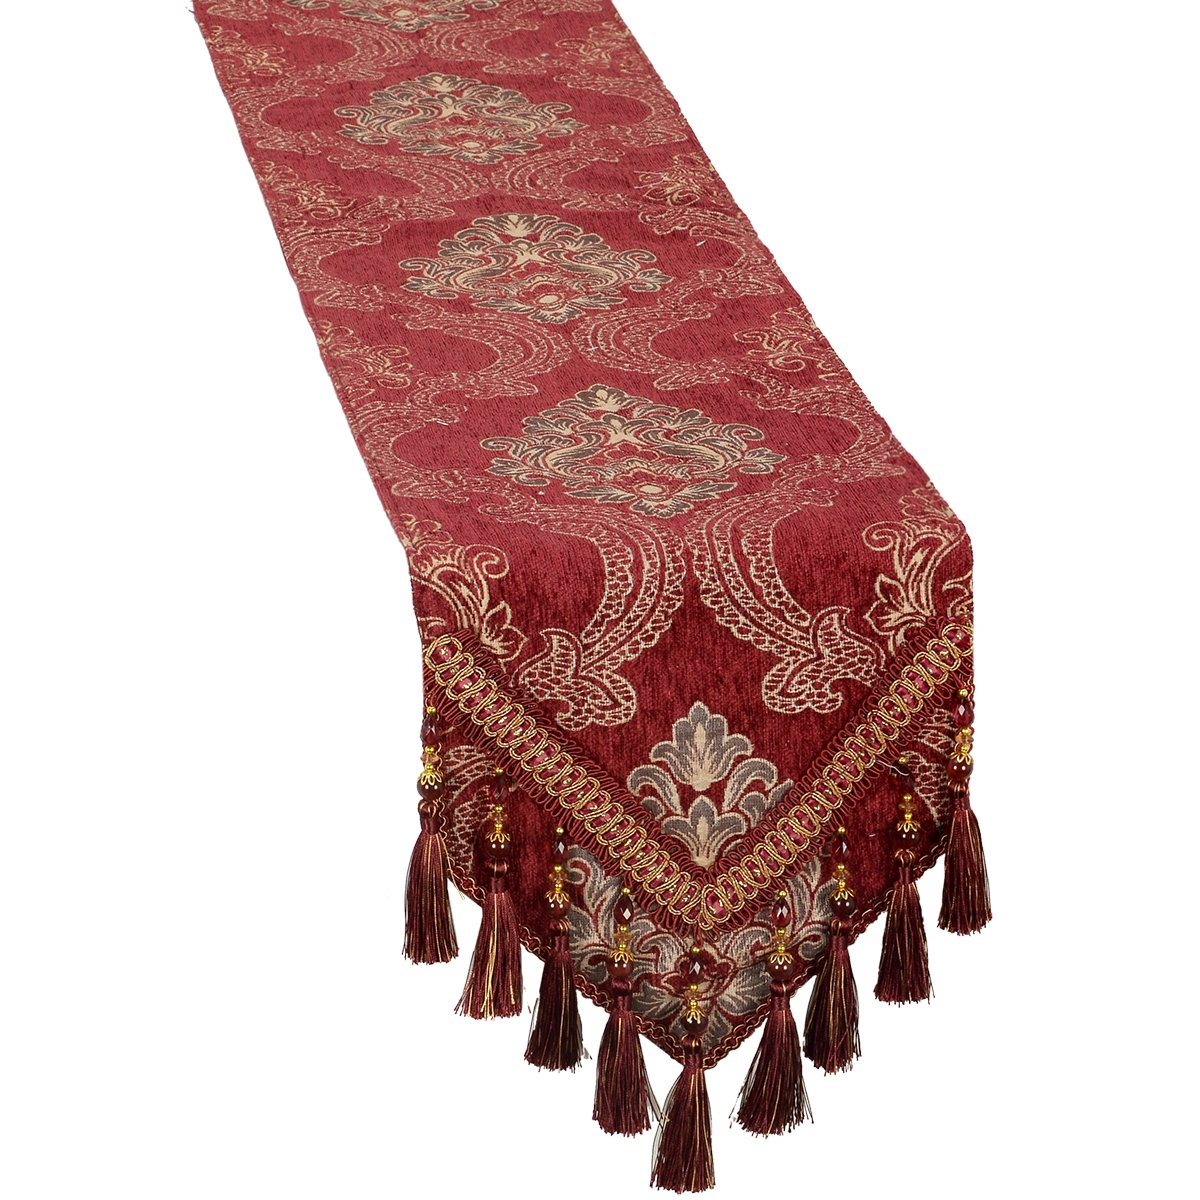 Grelucgo Double Thickness Burgundy Damask Floral Table Runners Dresser Scarves with Multi-Tassels (12x108 inch) by Grelucgo